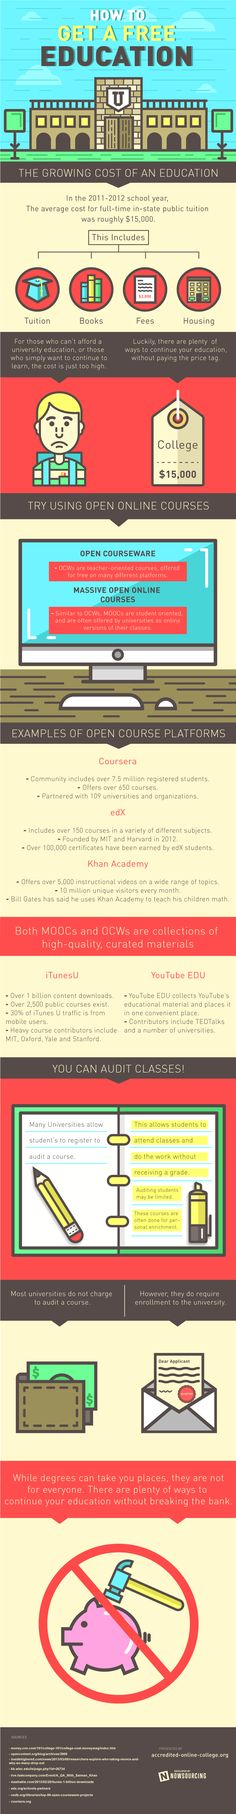 How to Get a Free Education   #Education #HowTo #infographic